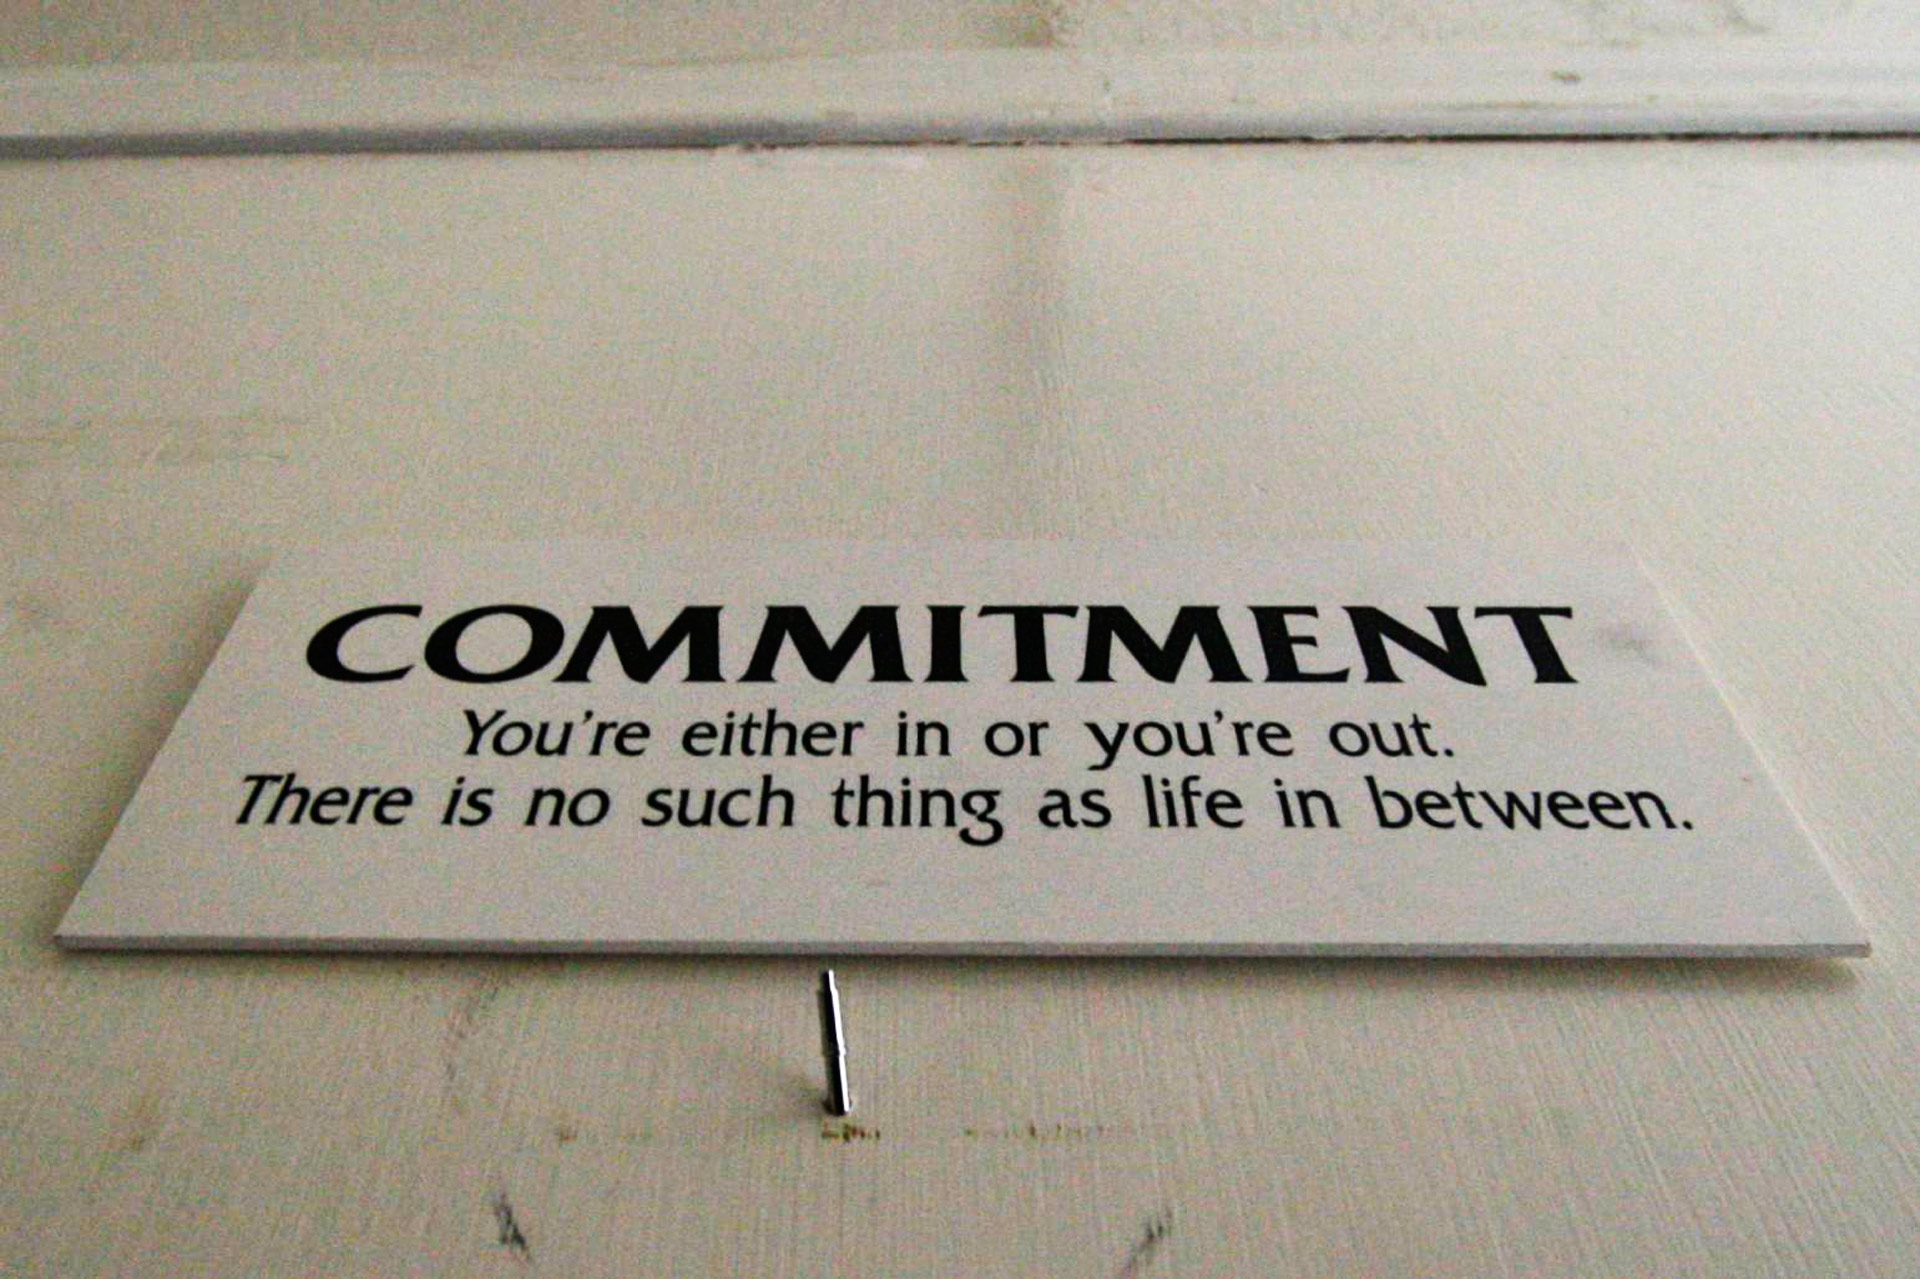 Picture of a sign on a wall that says 'Commitment'